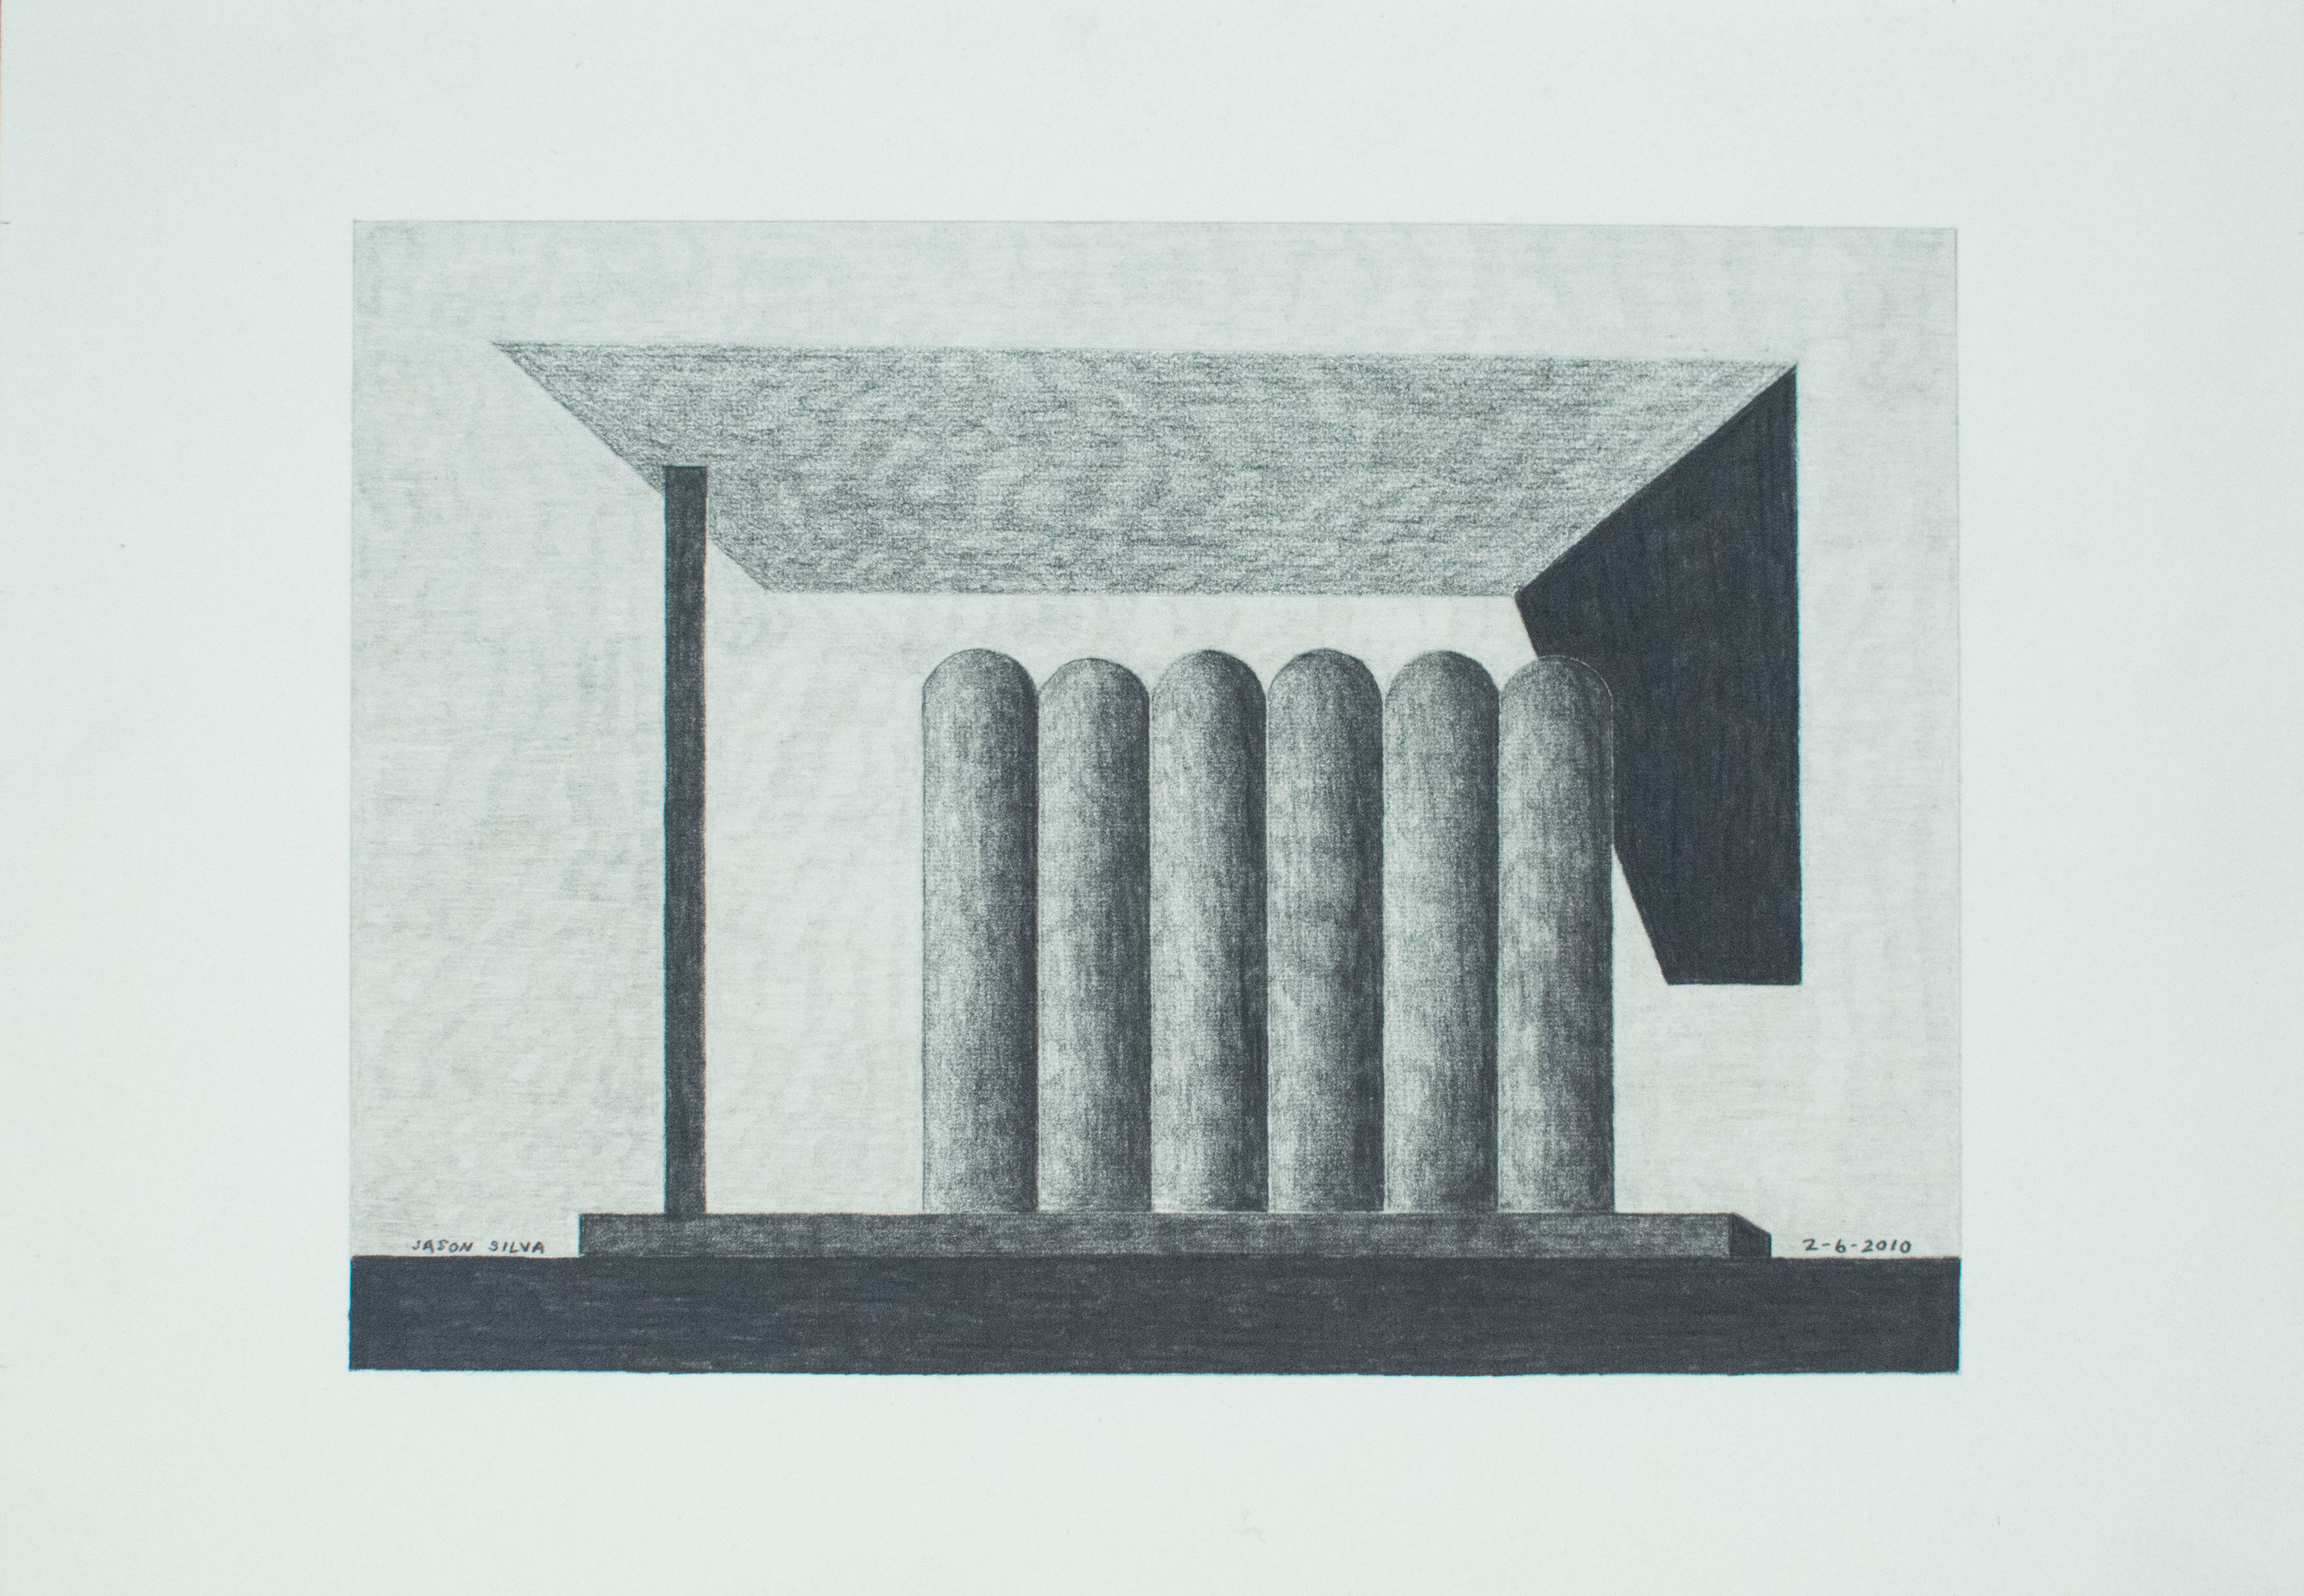 2-6-10, 2010, Graphite on paper, 7 x 10 inches